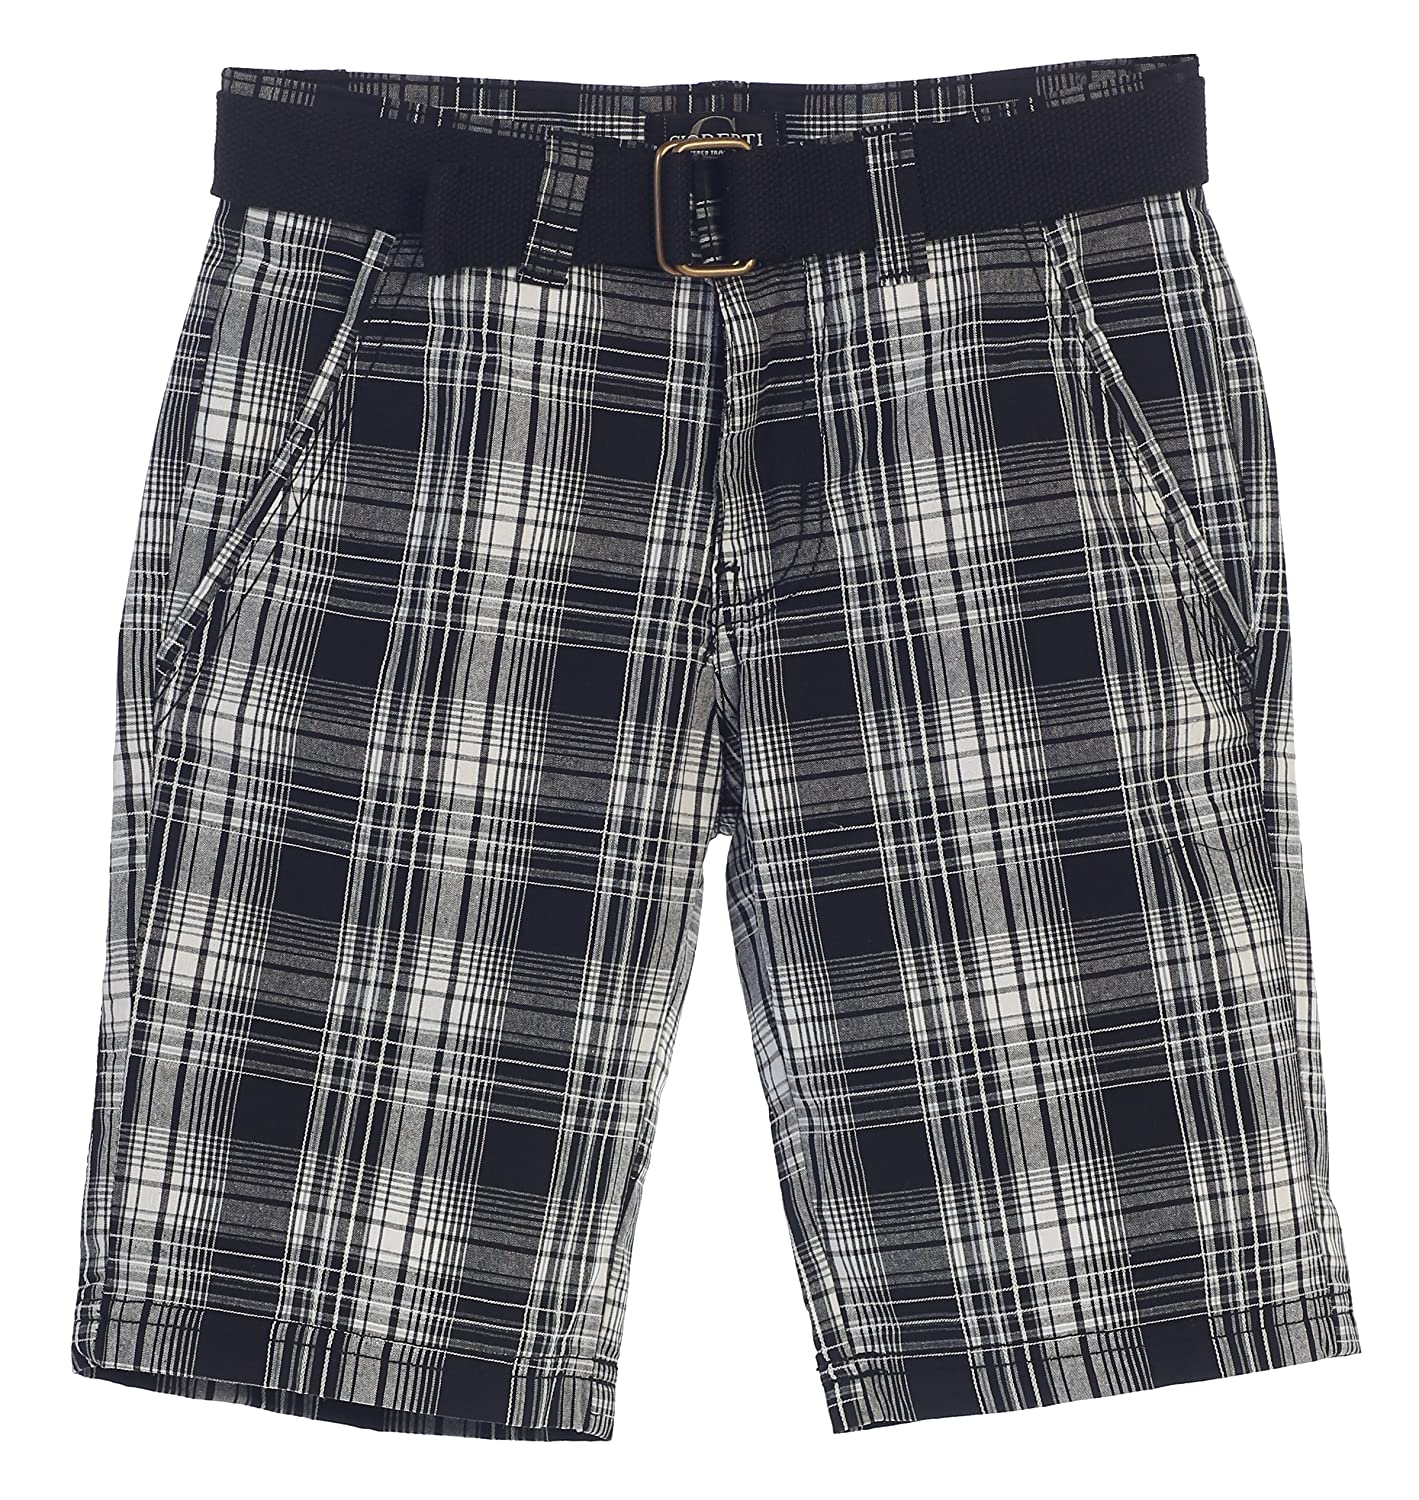 Gioberti Boys Plaid Shorts With Front Button & Zipper and Belt Loop Waistband CS-822